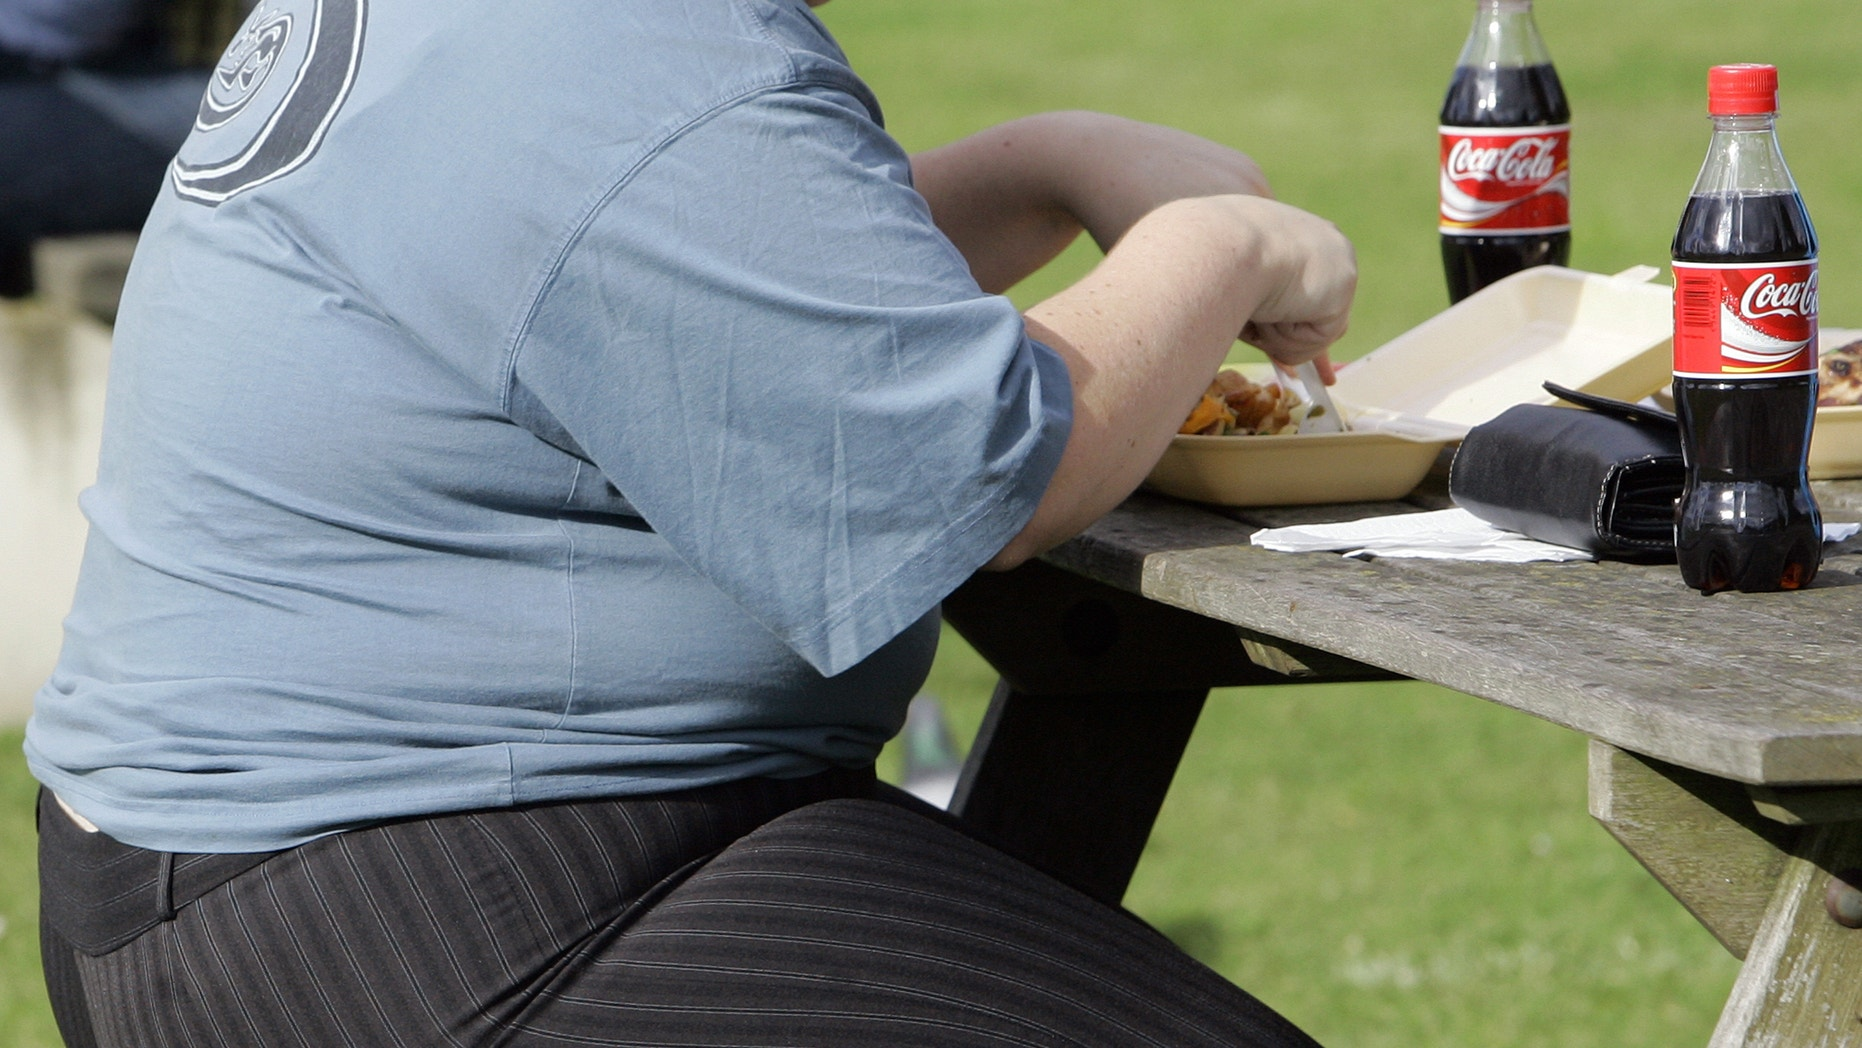 An overweight person eats in London, Wednesday, Oct. 17, 2007.  Almost a third of the world population is now fat, and no country has been able to curb obesity rates in the last three decades, according to a new global analysis released May 29, 2014. (AP Photo/Kirsty Wigglesworth, FILE)